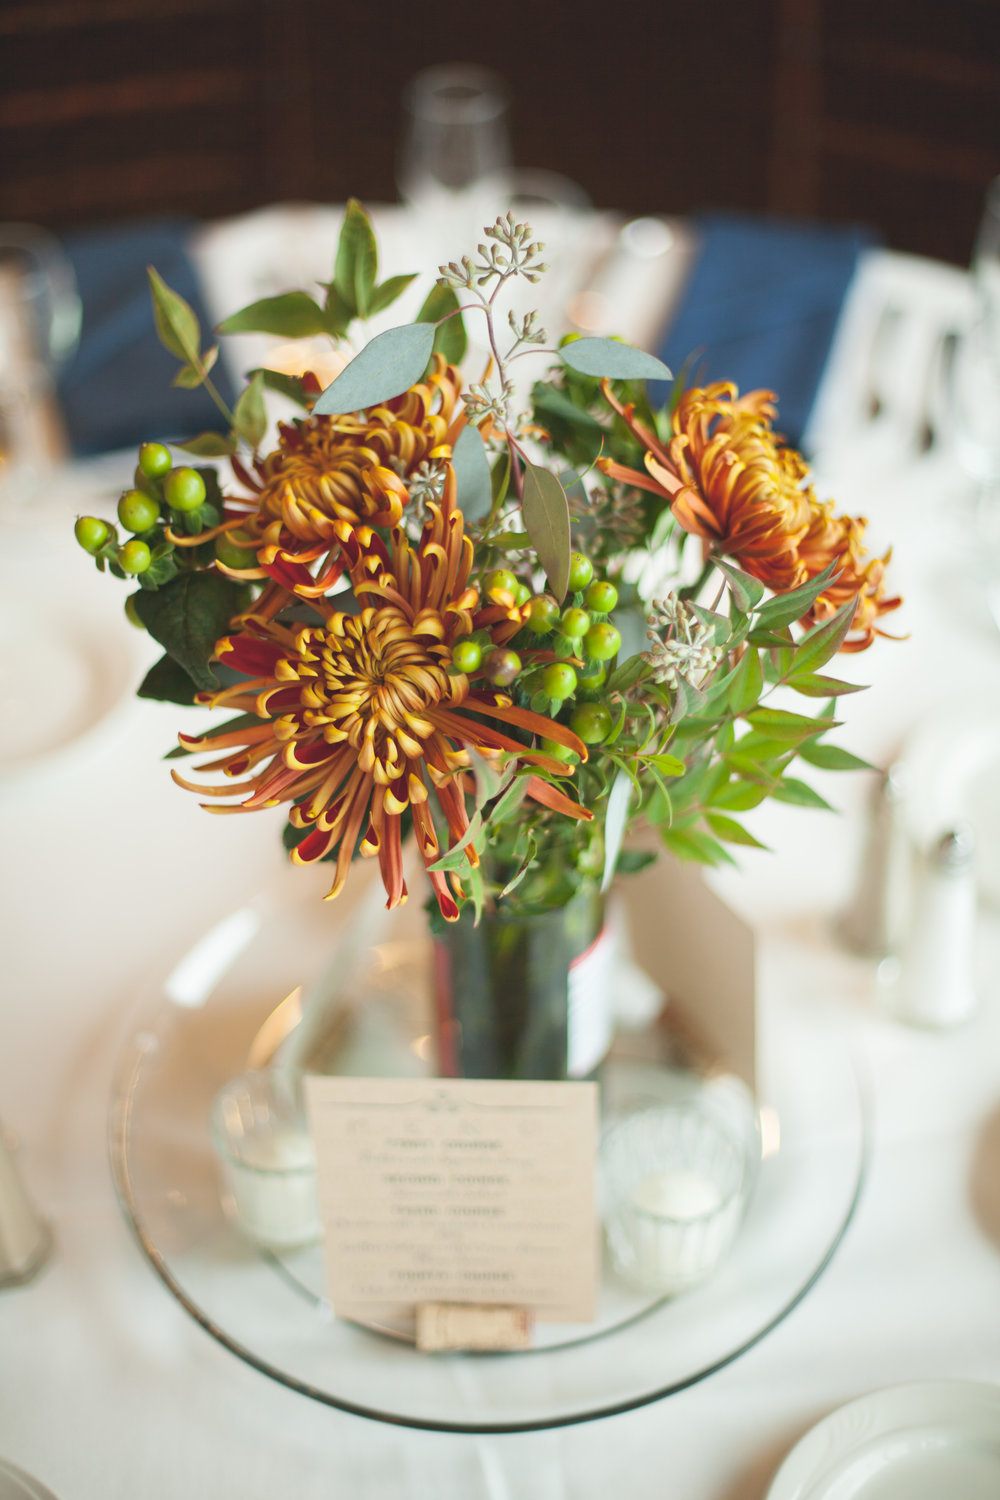 wedding centerpiece - small centerpiece - mums - Riverside Reception Wedding - Fabyan Forest Preserve Wedding - Penrose Brewing Wedding - fall - Geneva Illinois.jpg